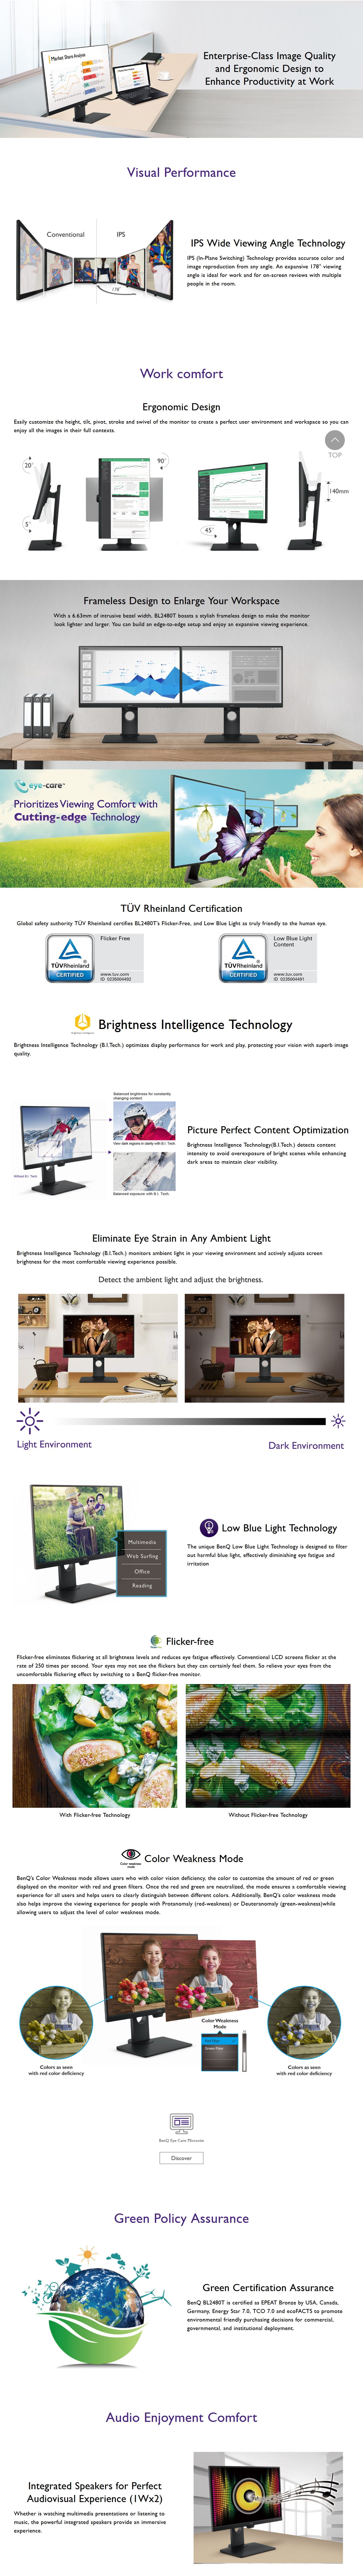 """A large marketing image providing additional information about the product BenQ BL2480T 24"""" Full HD 5MS IPS LED Business Monitor - Additional alt info not provided"""